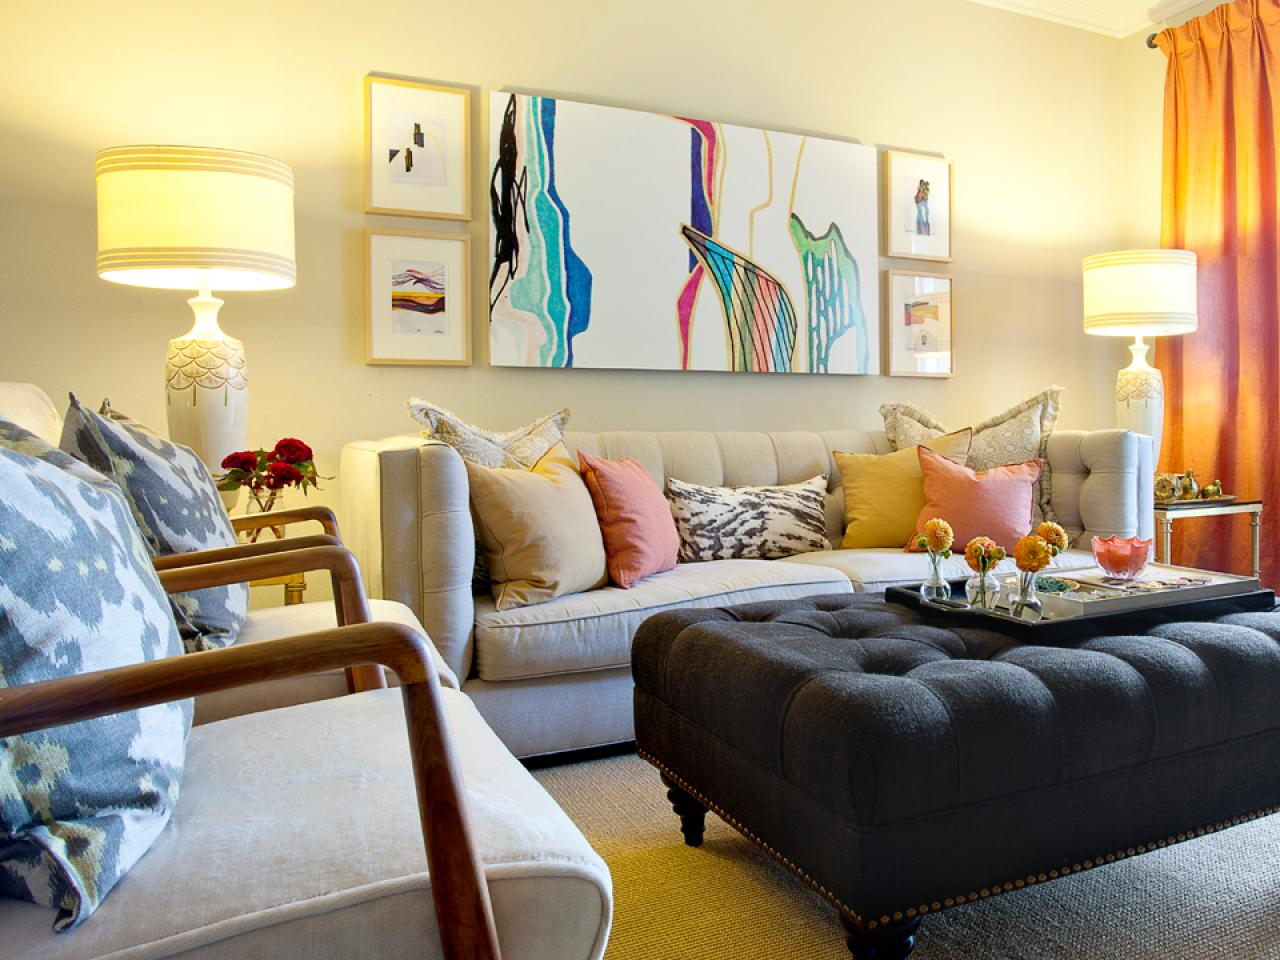 Eclectic Living Room With Colorful Painting